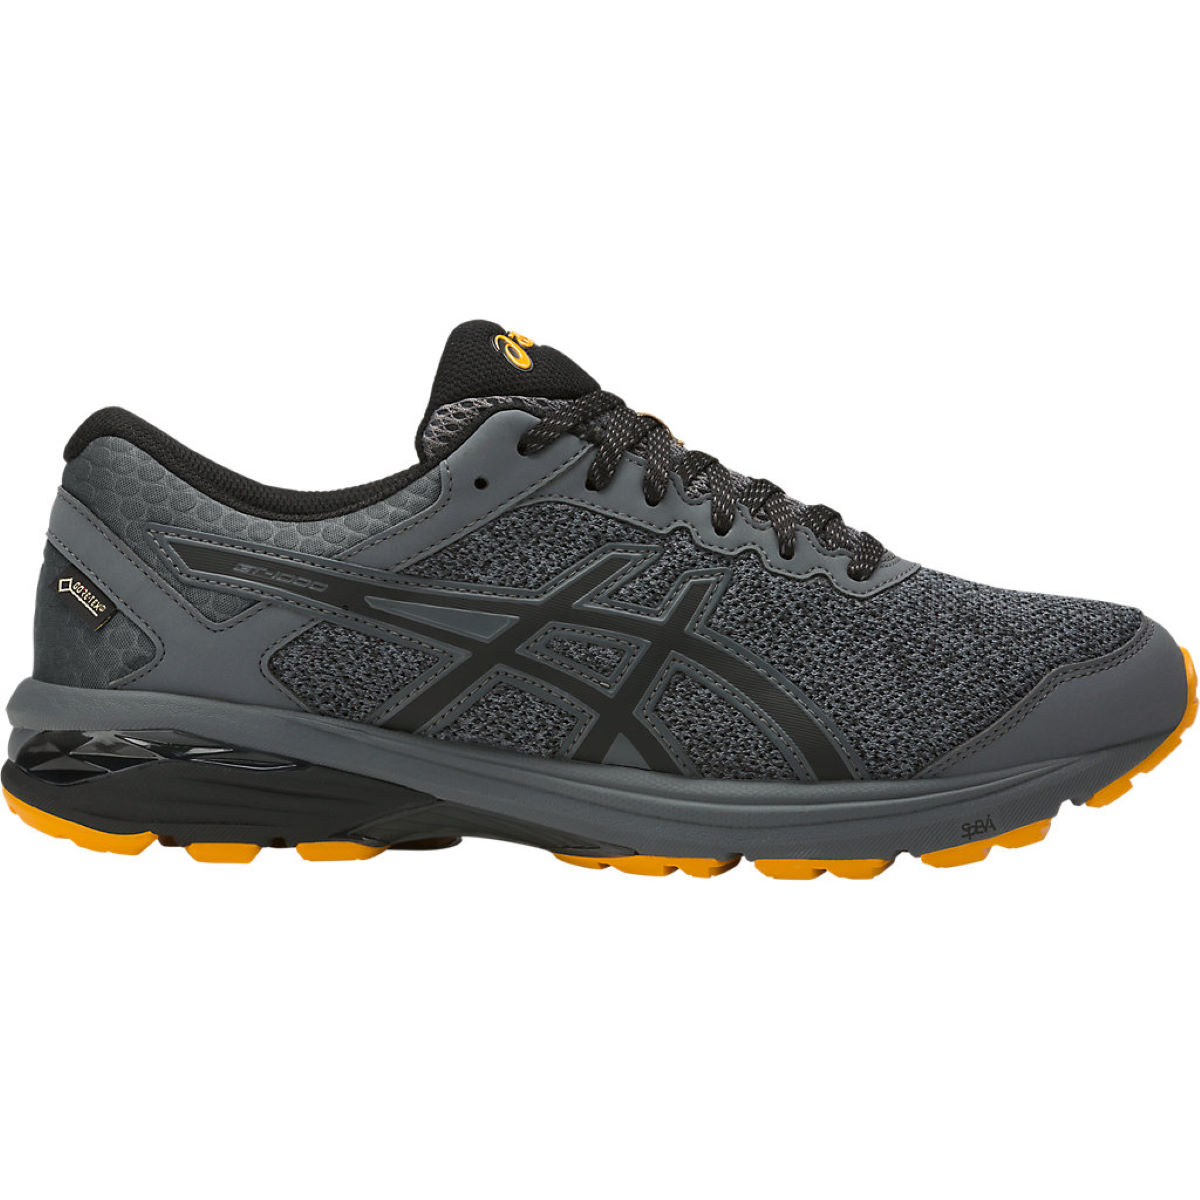 Chaussures Asics GT-1000 6 GTX - UK 11 Carbon/Black/Gold Fu